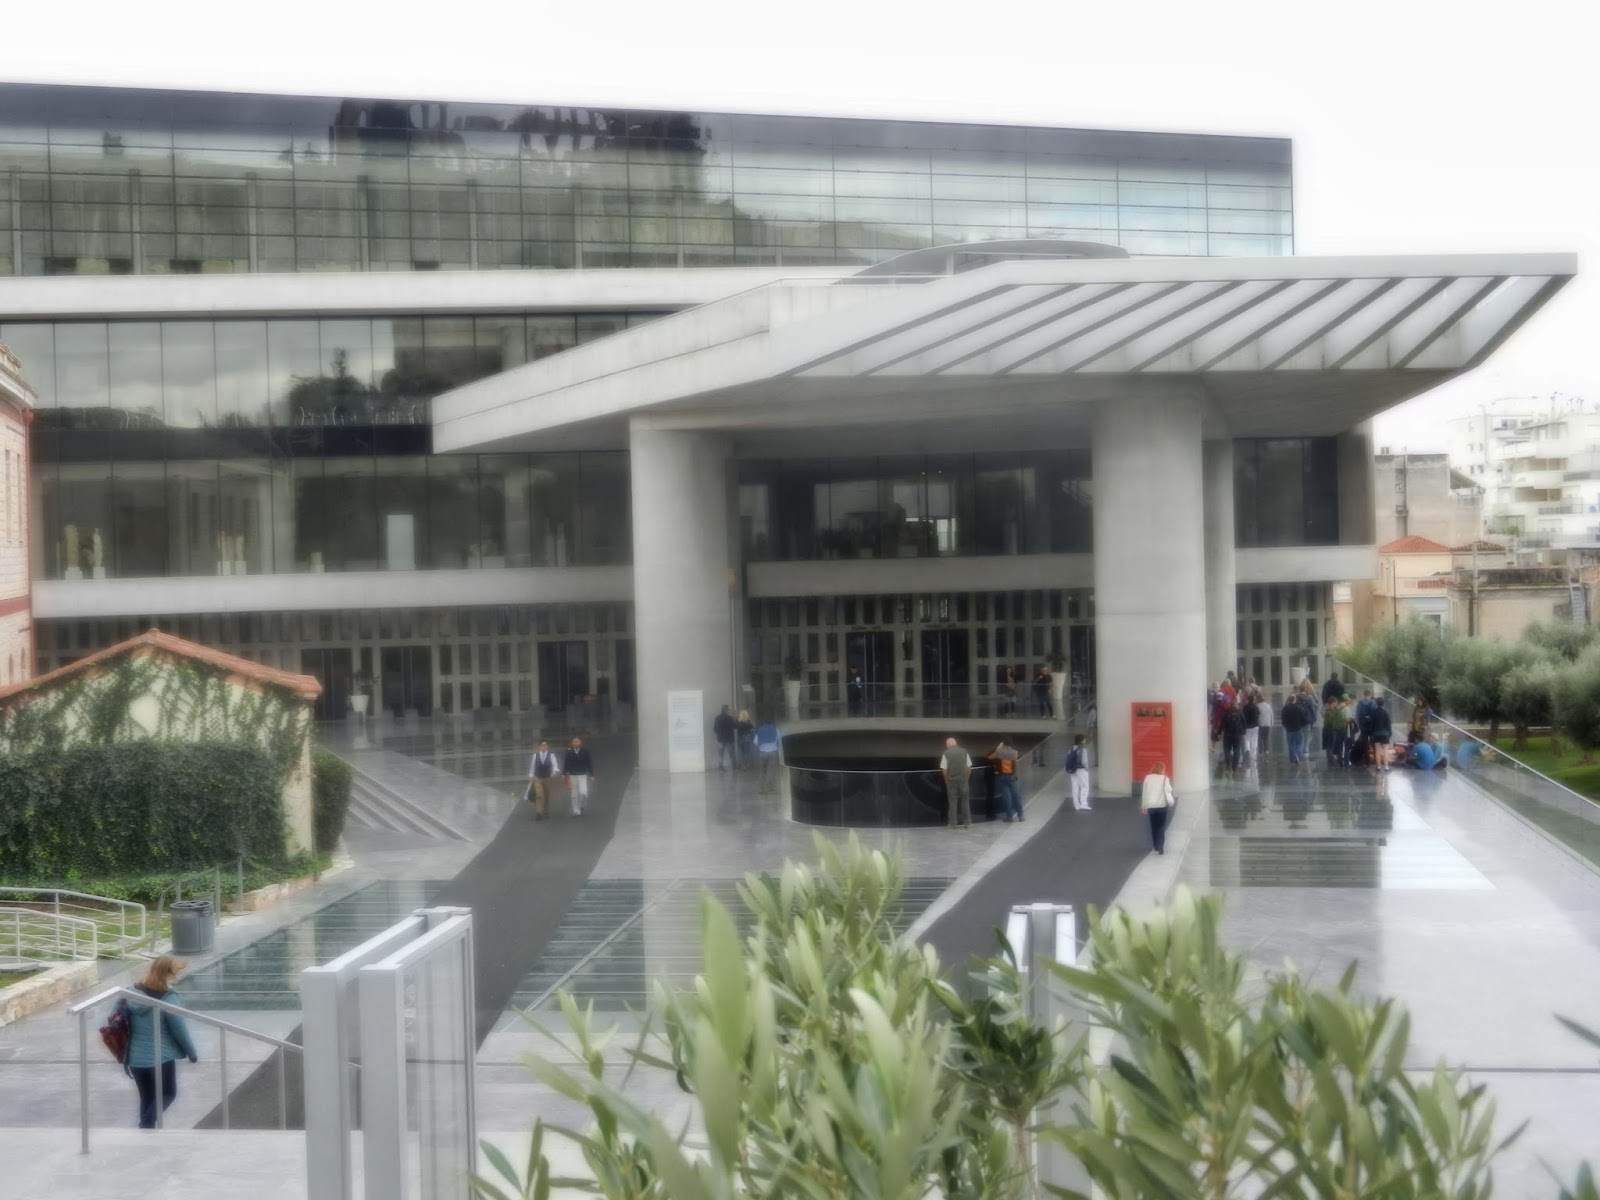 Athene: the new acropolis museum ~ almost 50 and still crazy